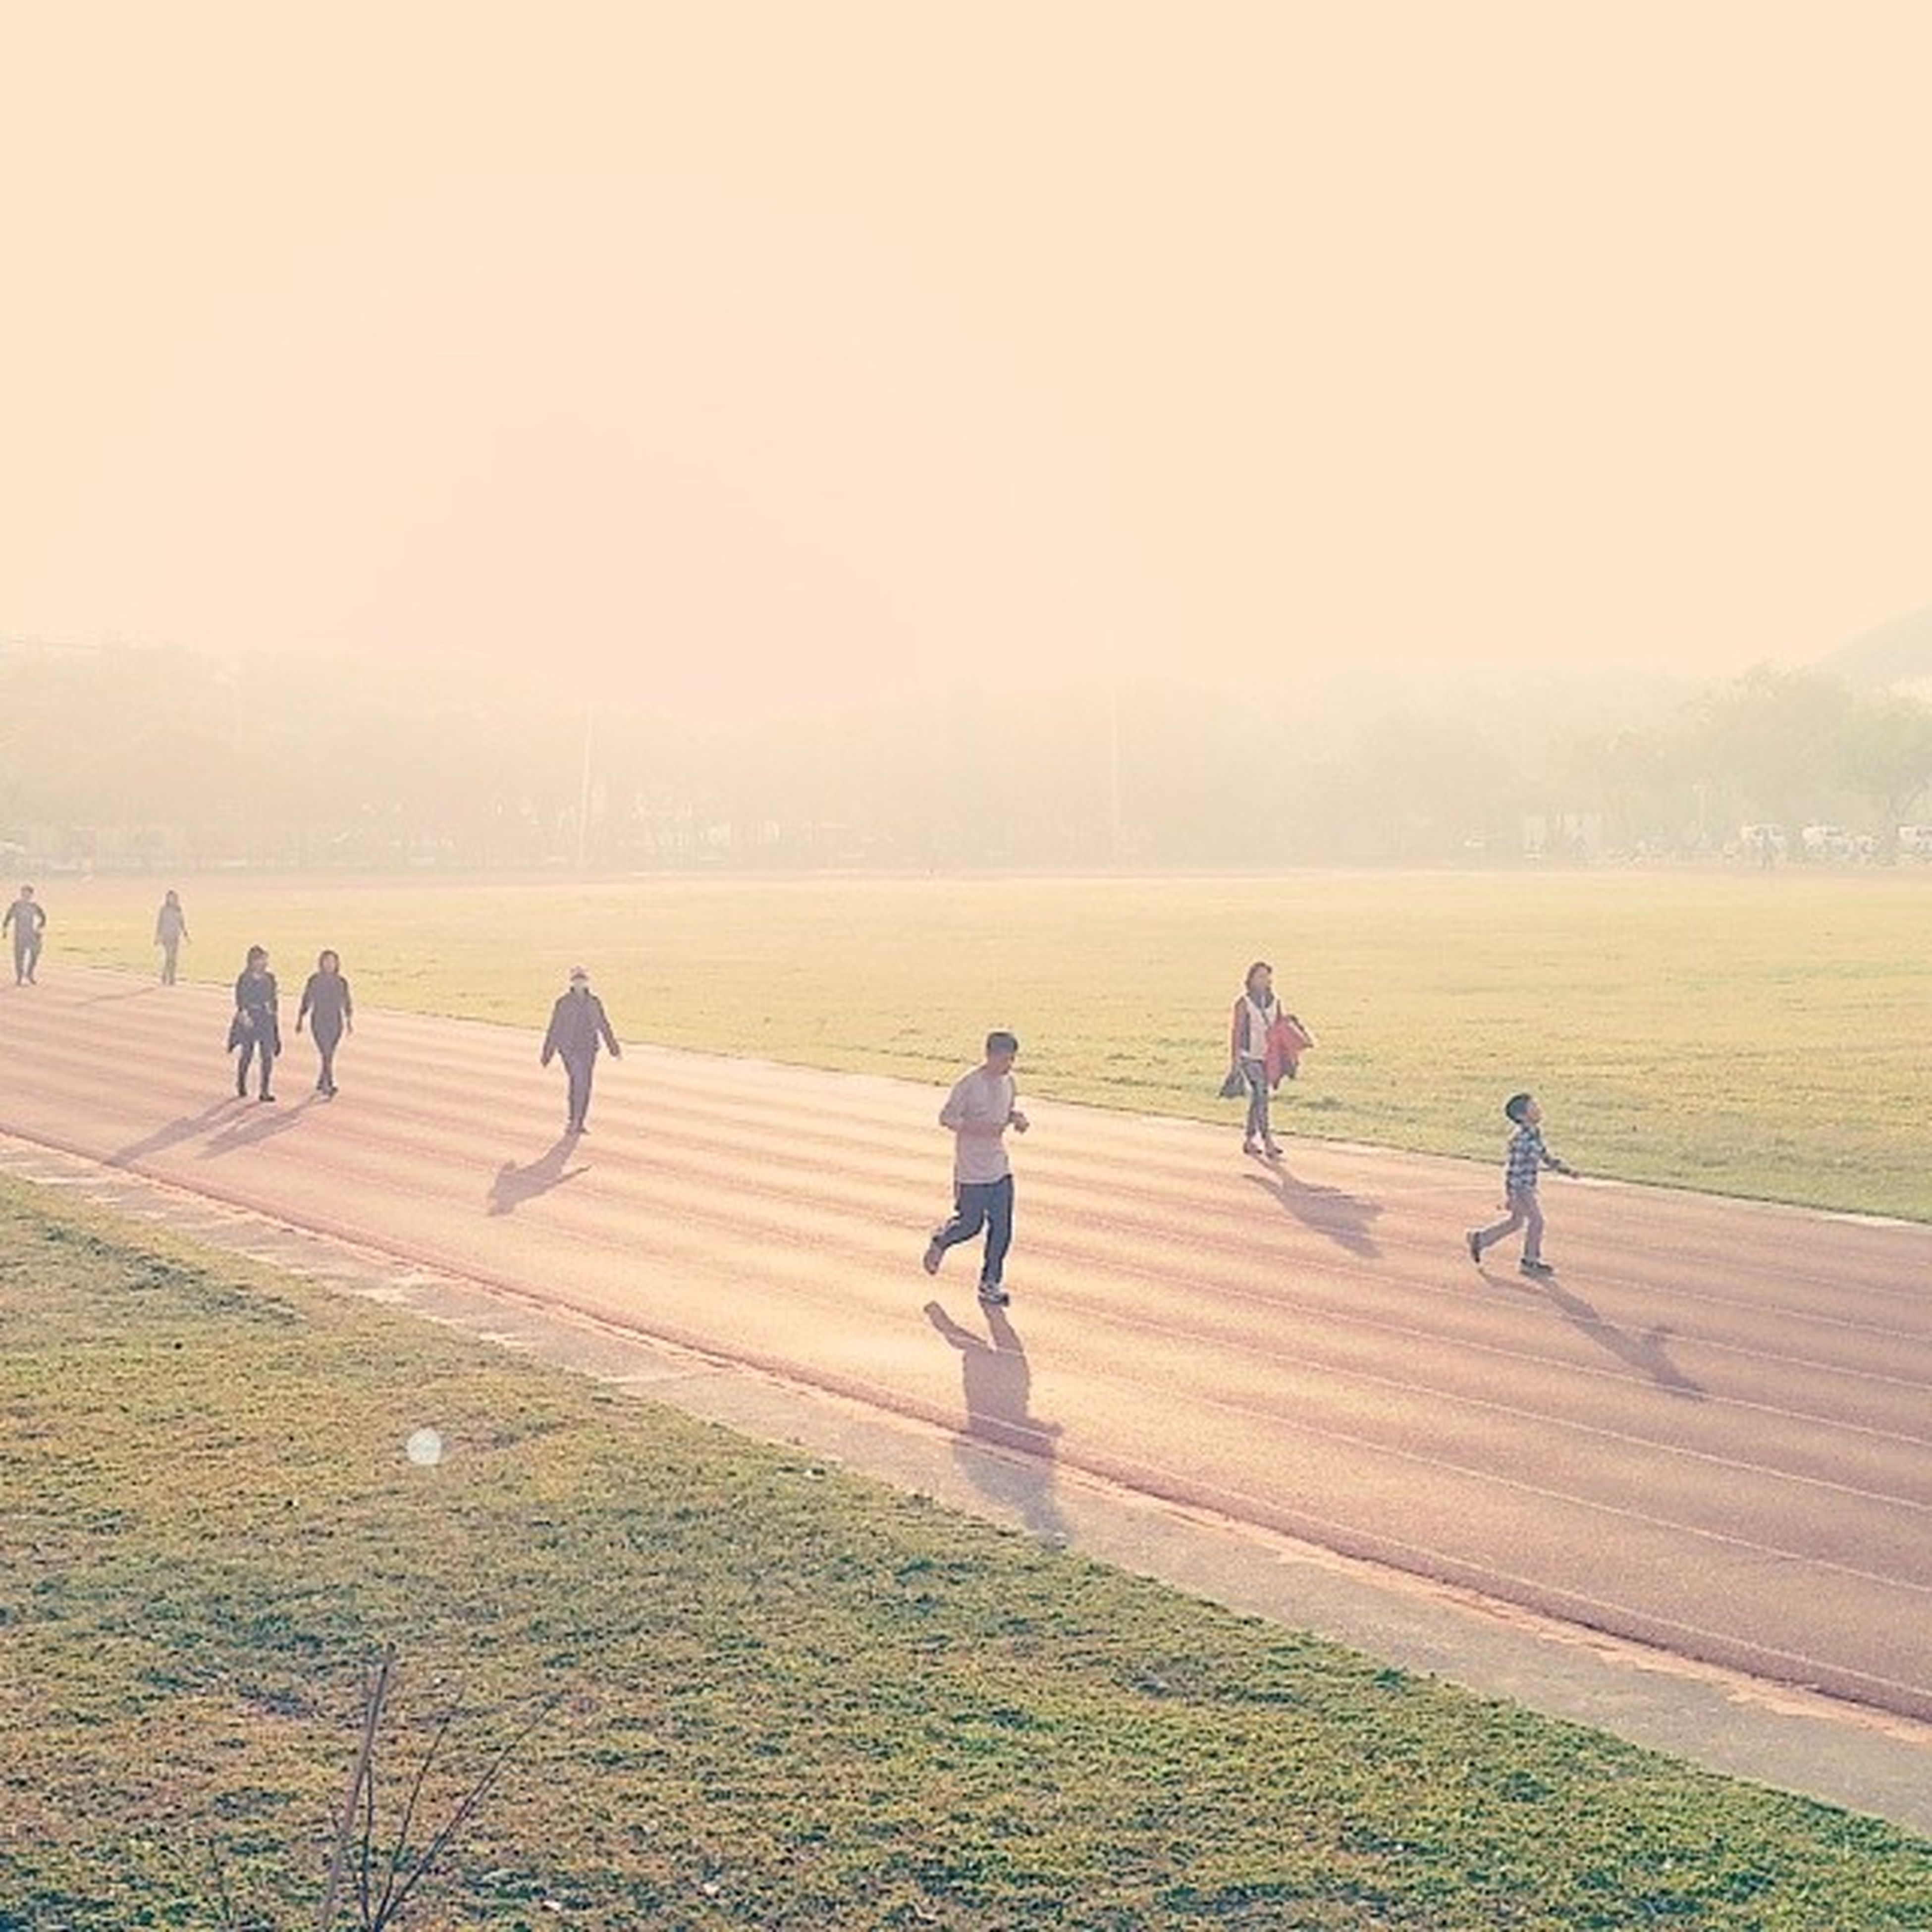 men, lifestyles, leisure activity, field, copy space, full length, walking, clear sky, grass, landscape, person, bicycle, nature, large group of people, togetherness, sky, running, medium group of people, outdoors